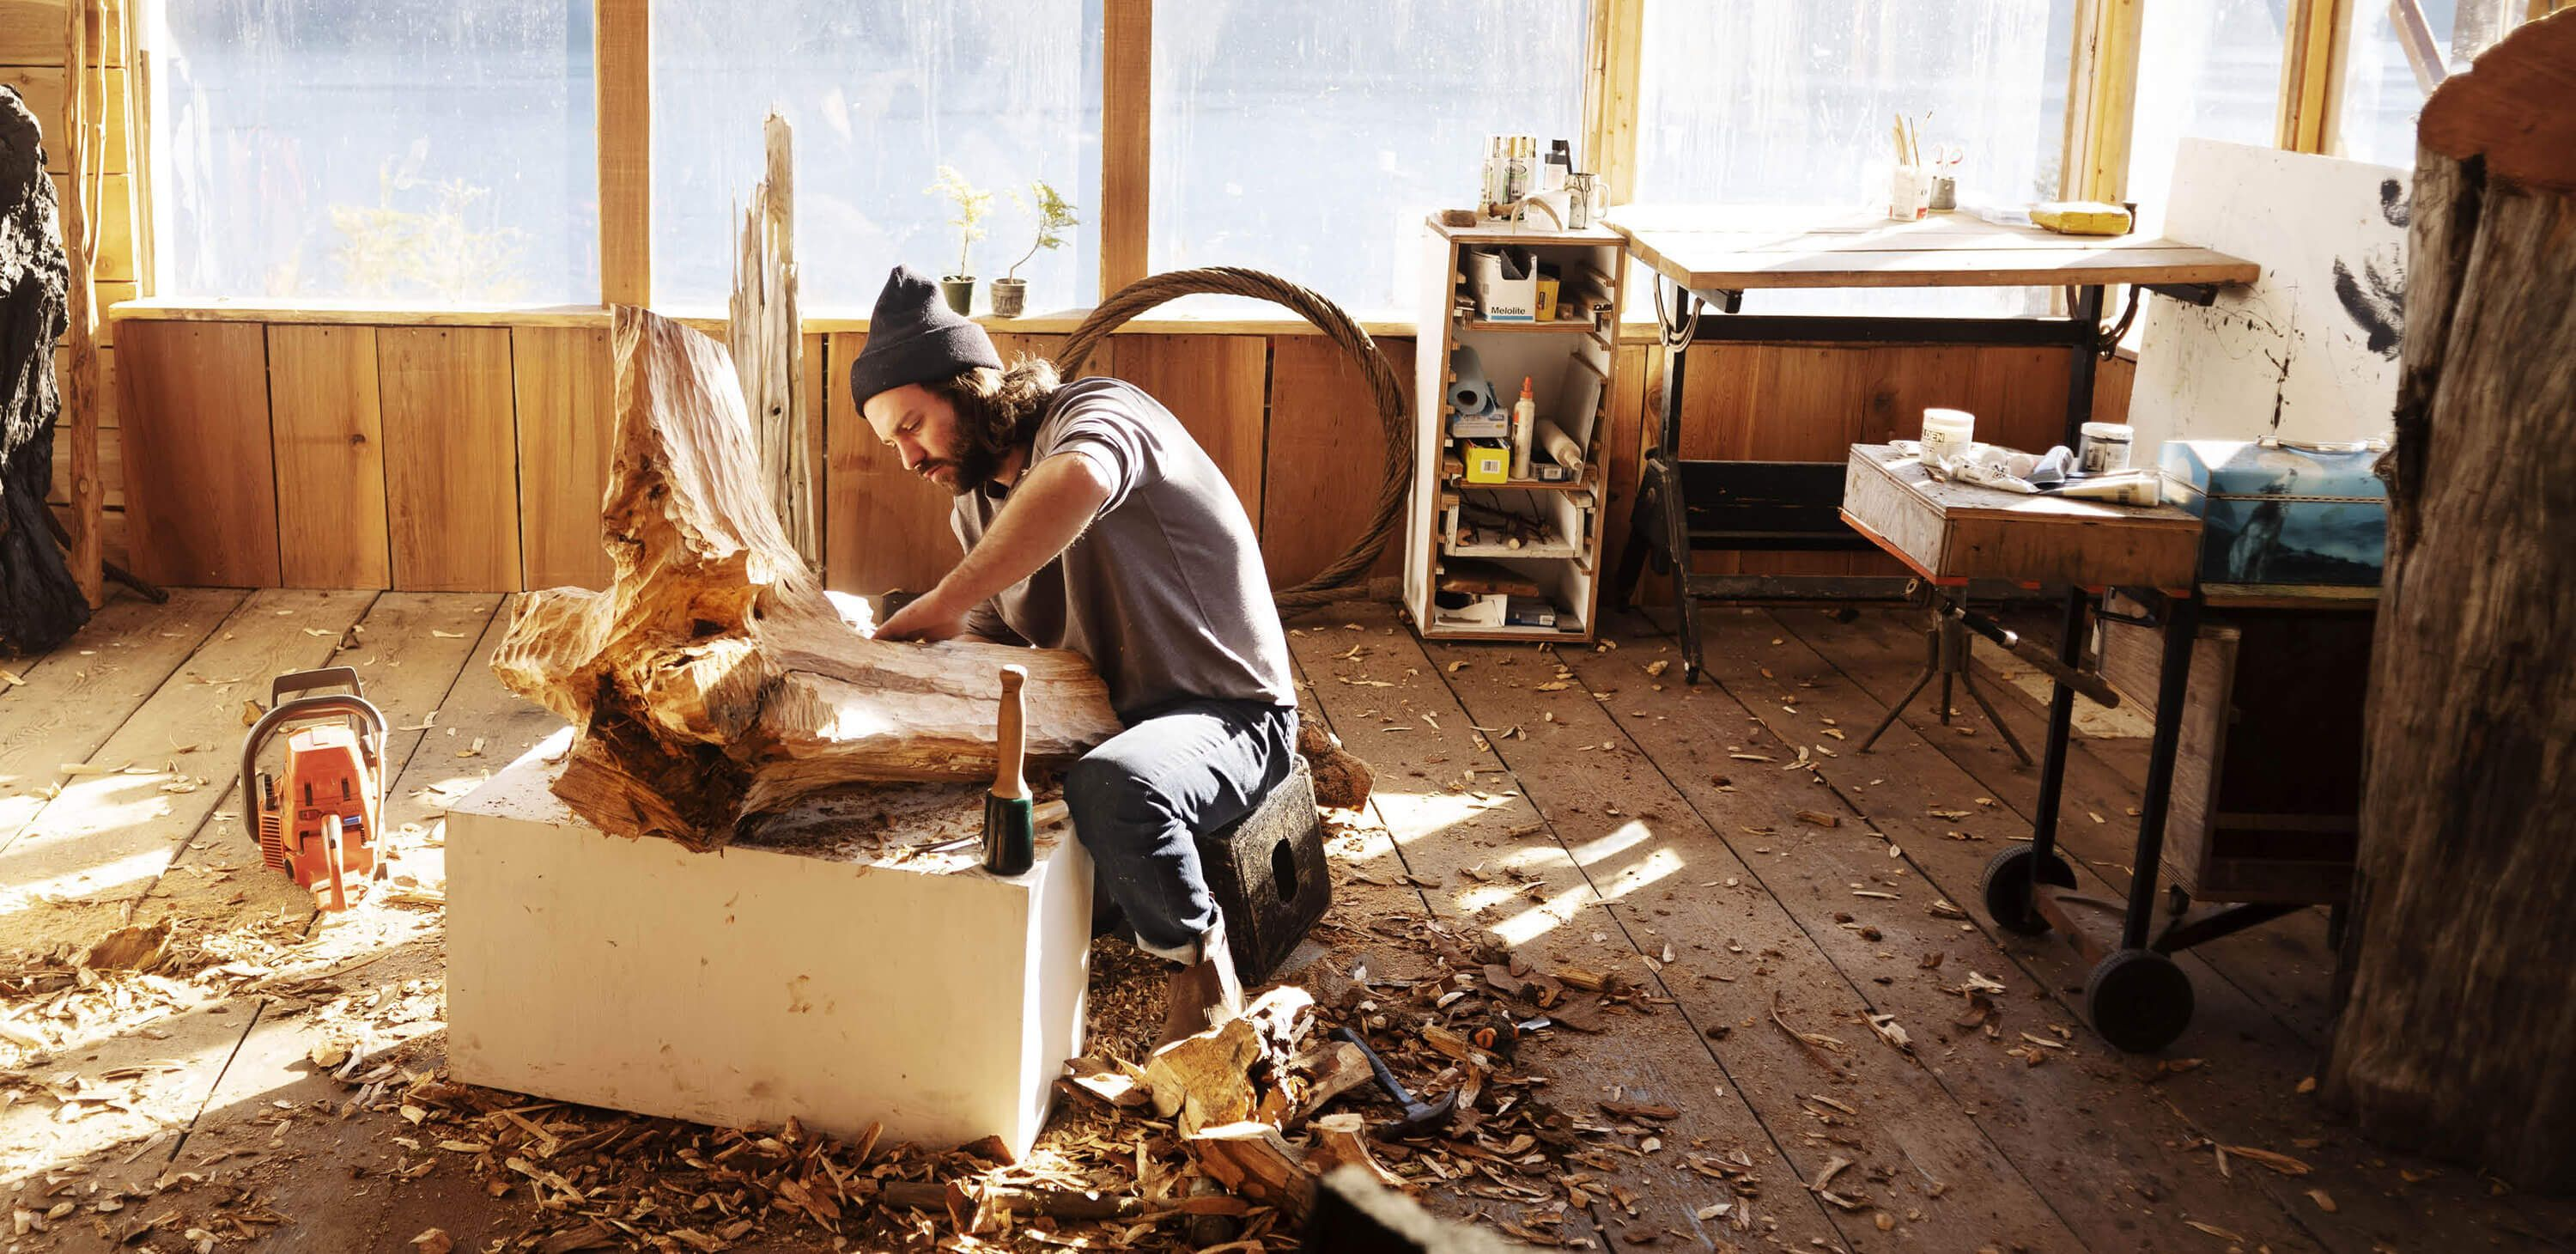 Troy Moth working in his off-the-grid workshop in British Columbia.